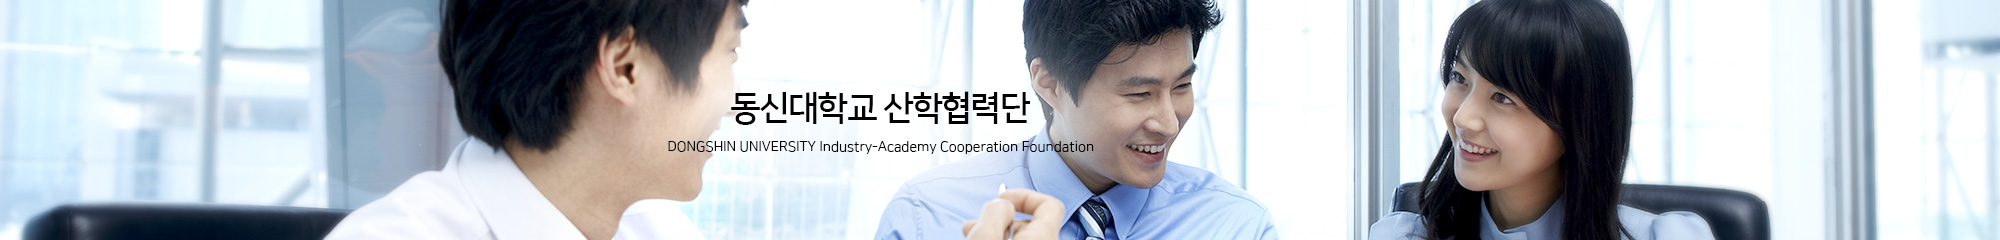 동신대학교 산학협력단